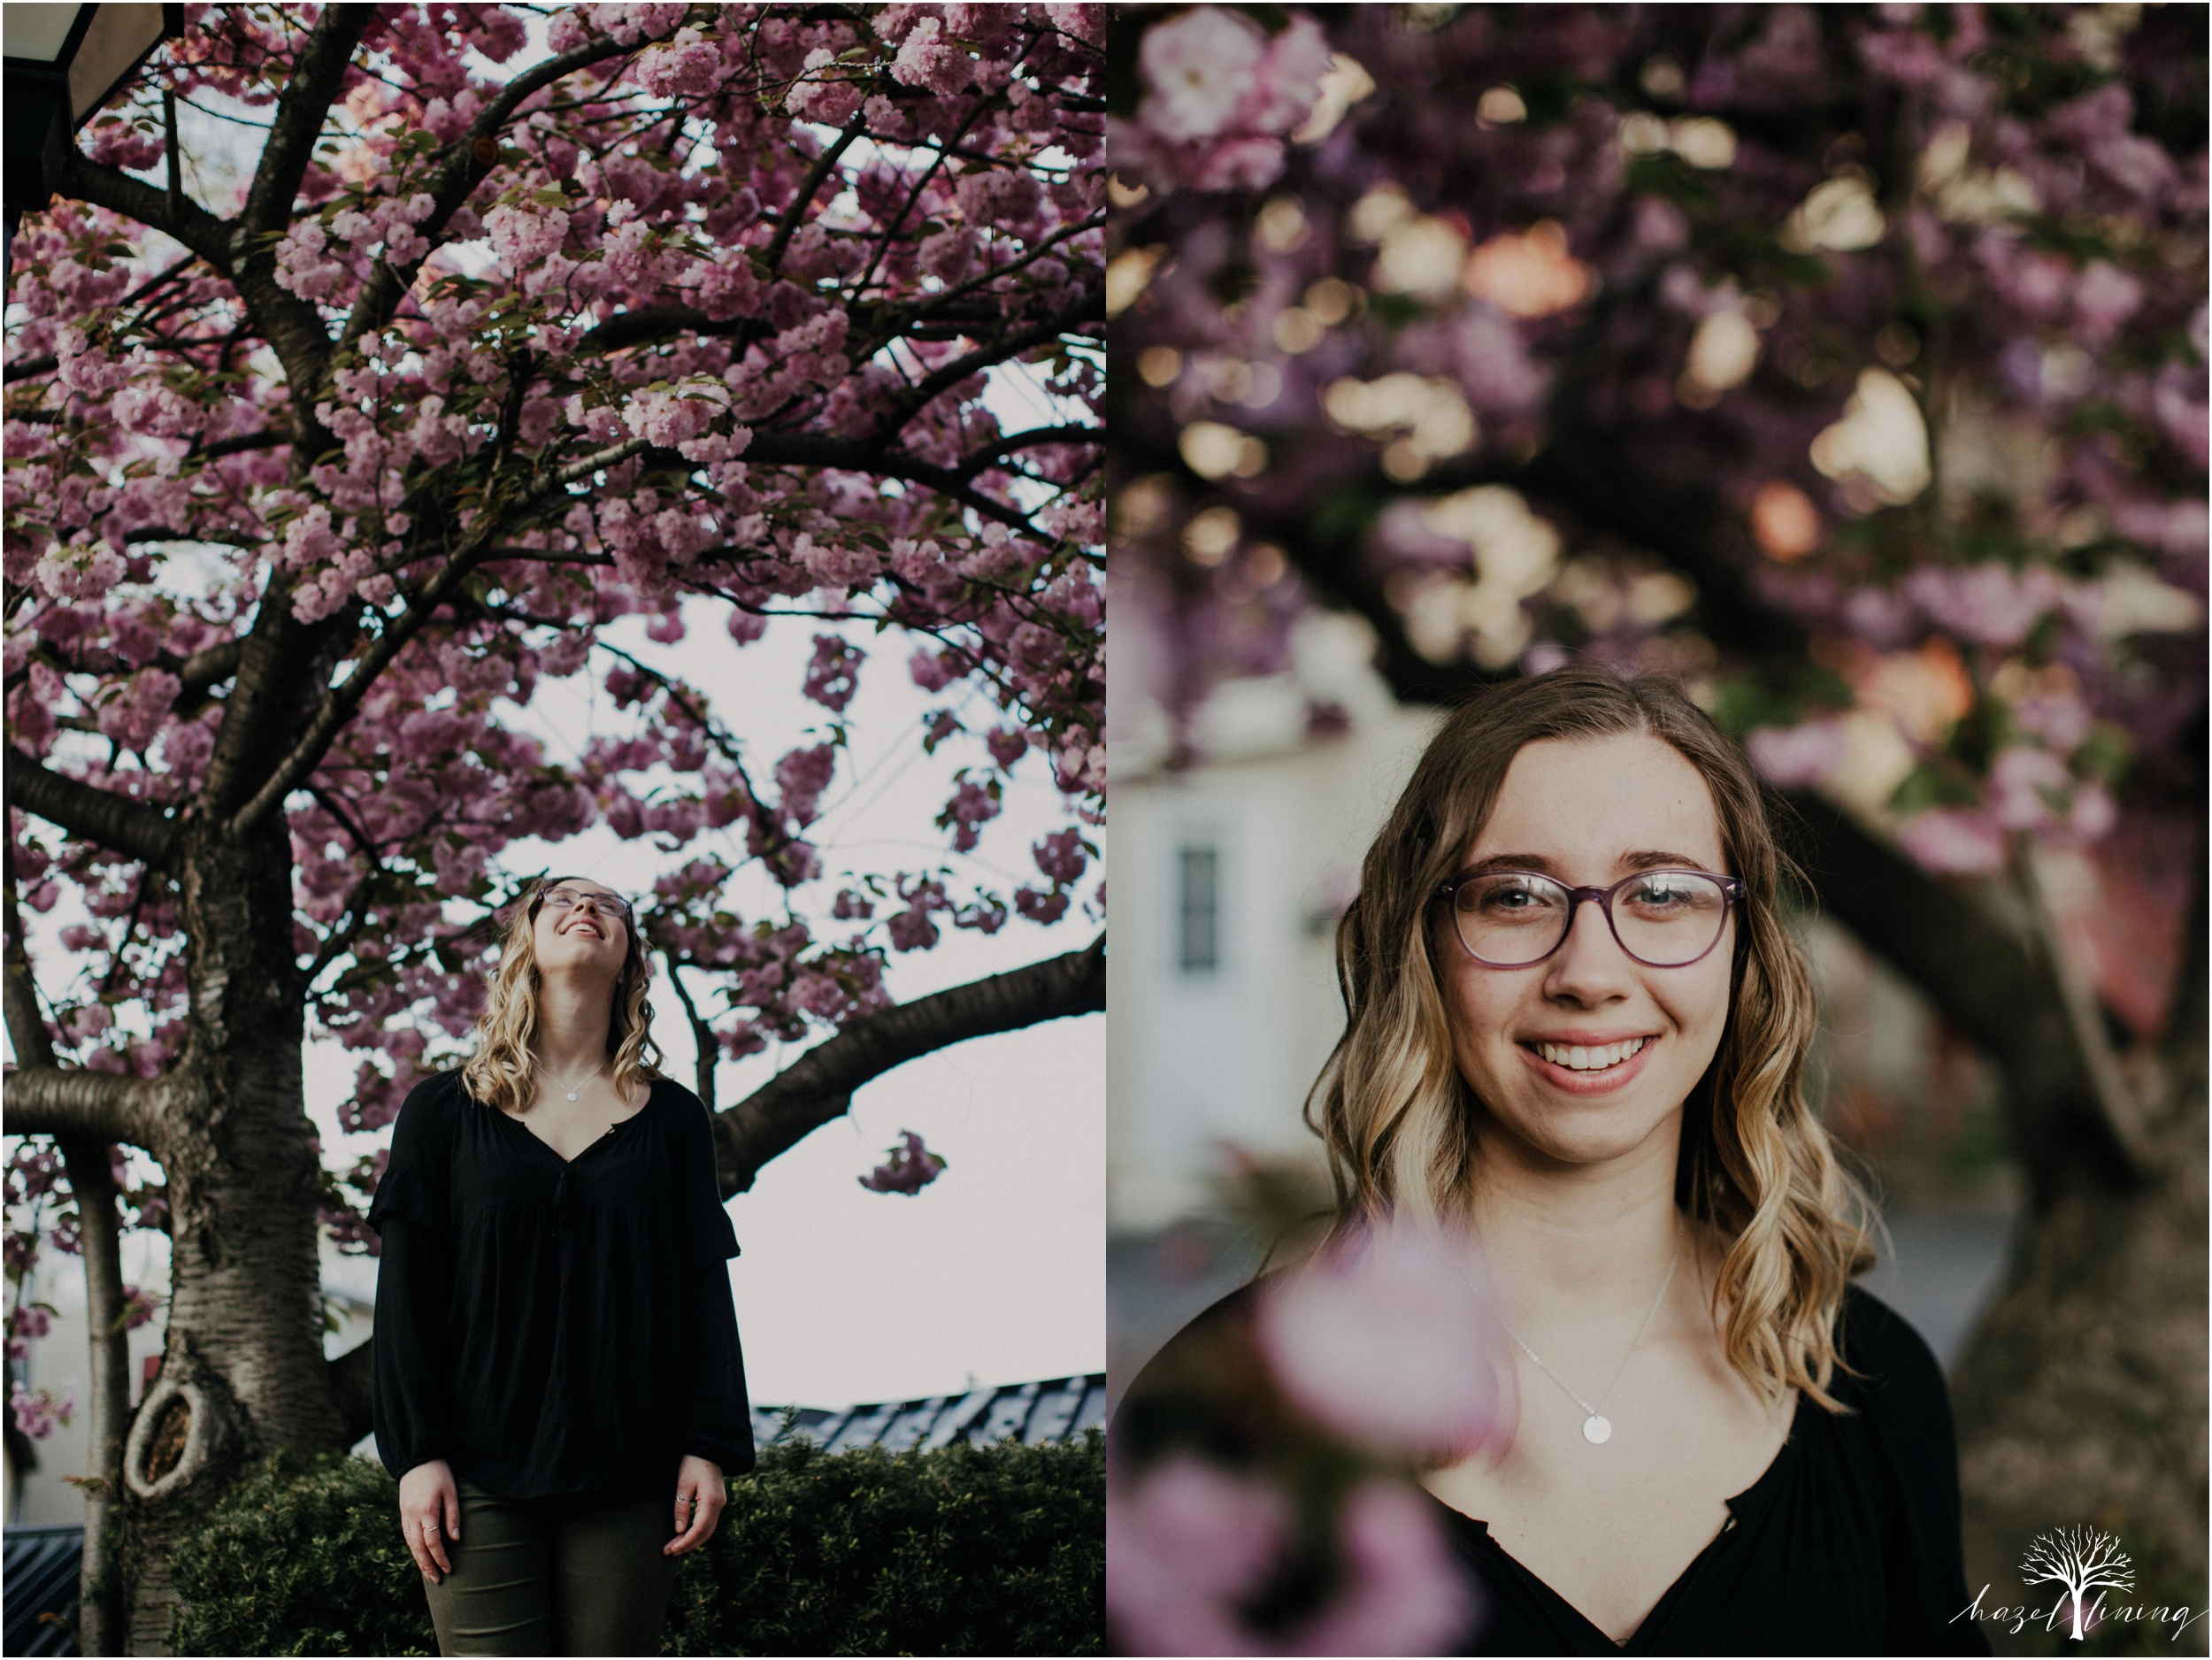 maddie-kiser-senior-portrait-session-doylestown-pennsylvania-spring-hazel-lining-photography-destination-elopement-wedding-engagement-photography-year-in-review_0039.jpg